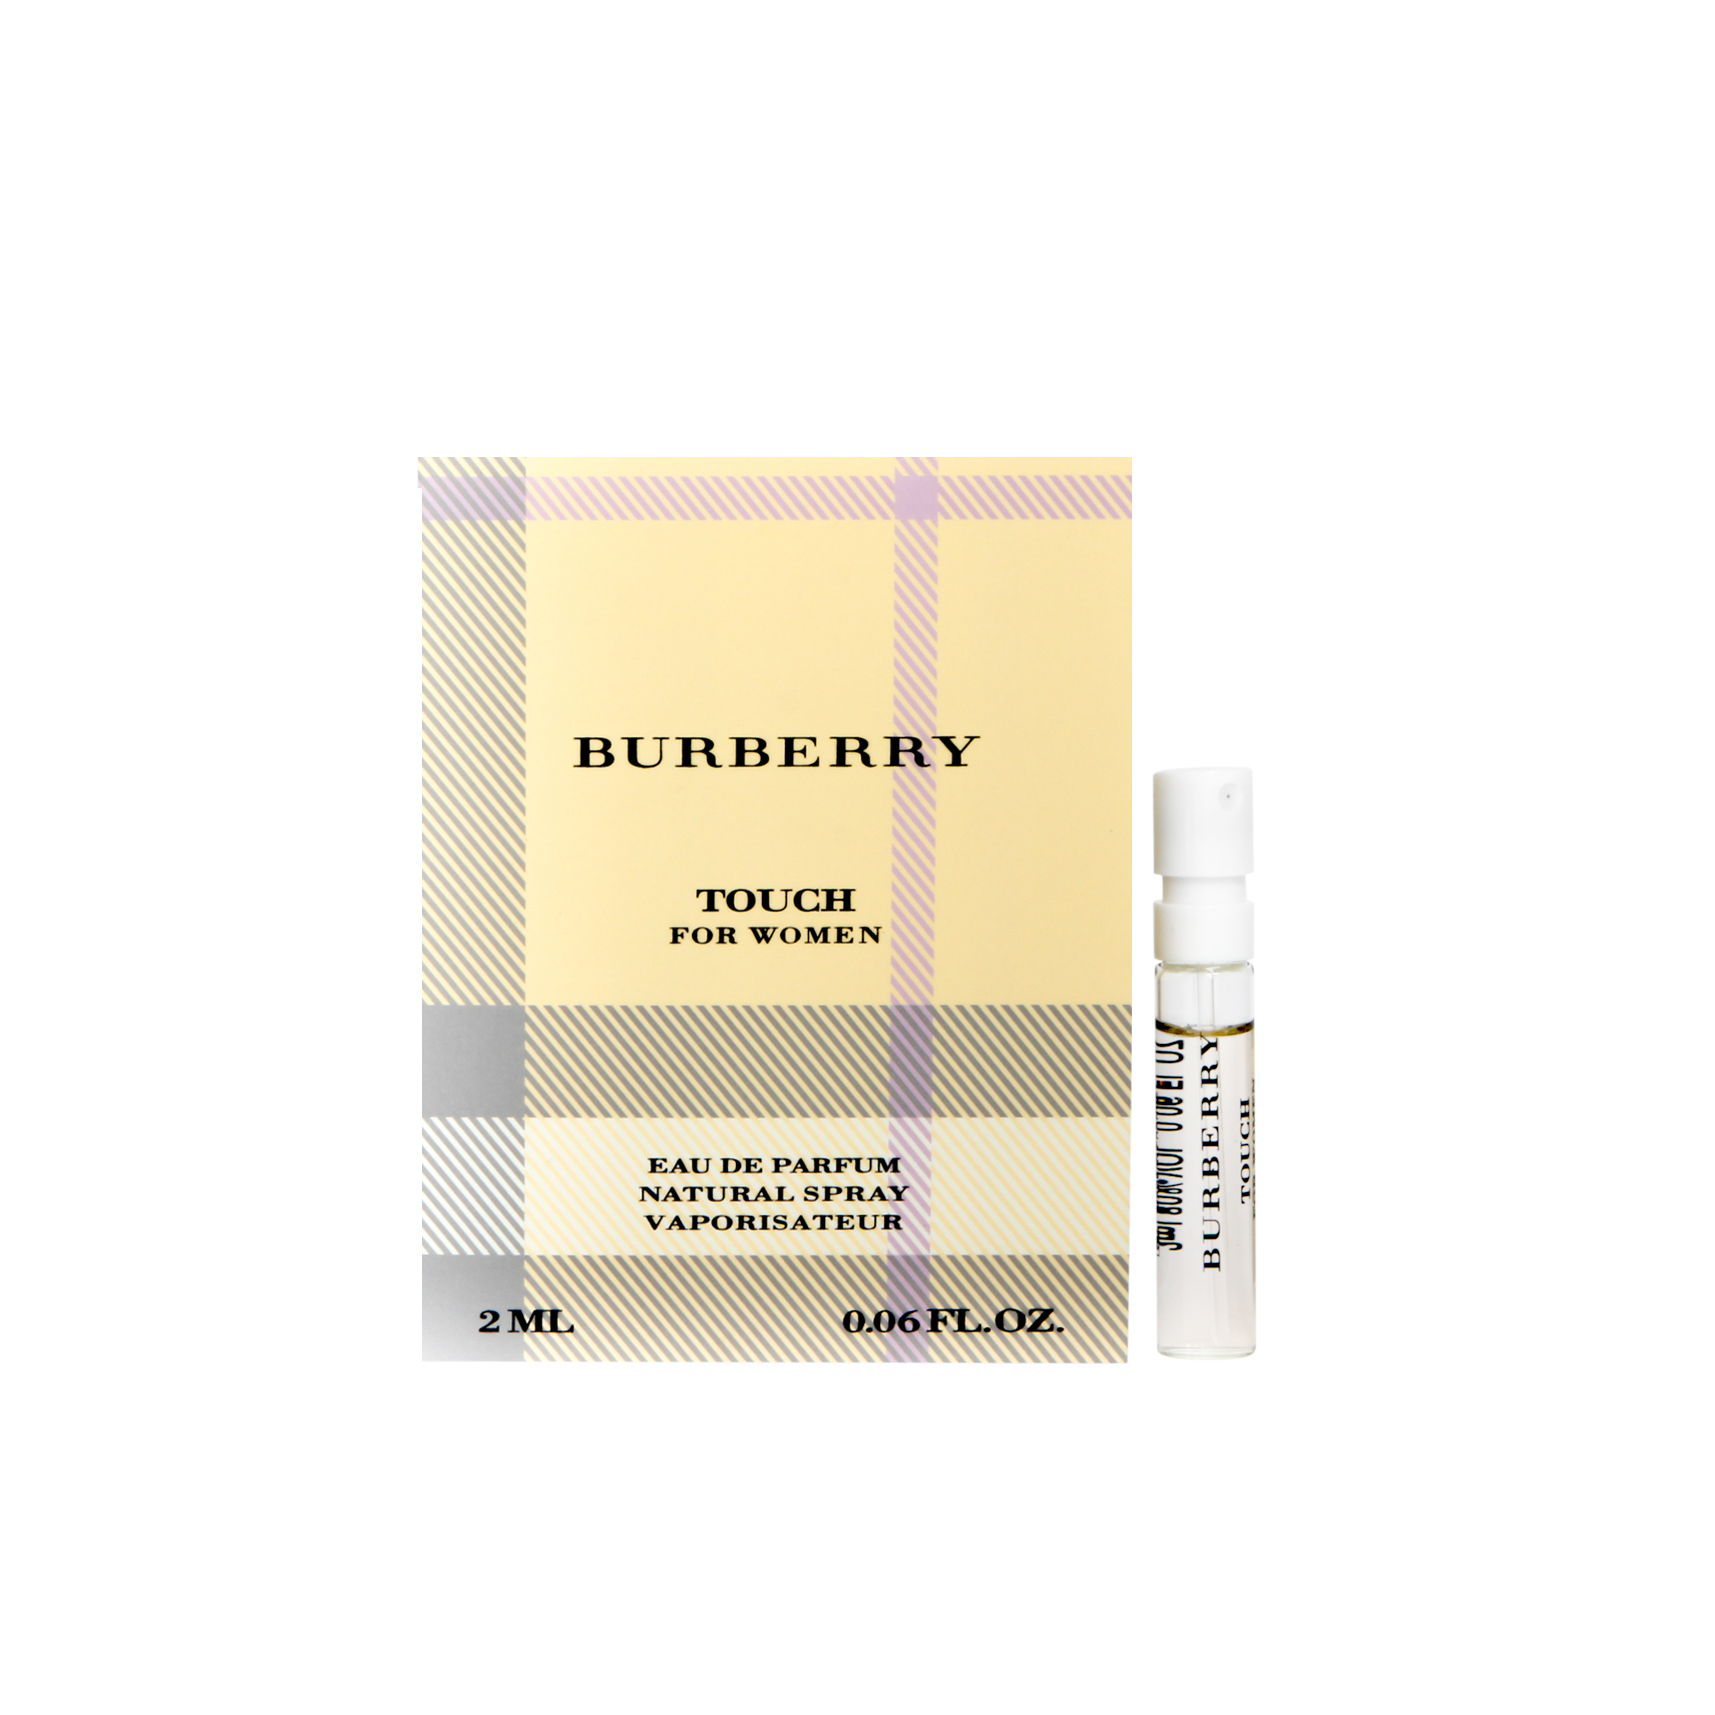 Burberry Touch by Burberry for Women 0.06oz EDP Spray